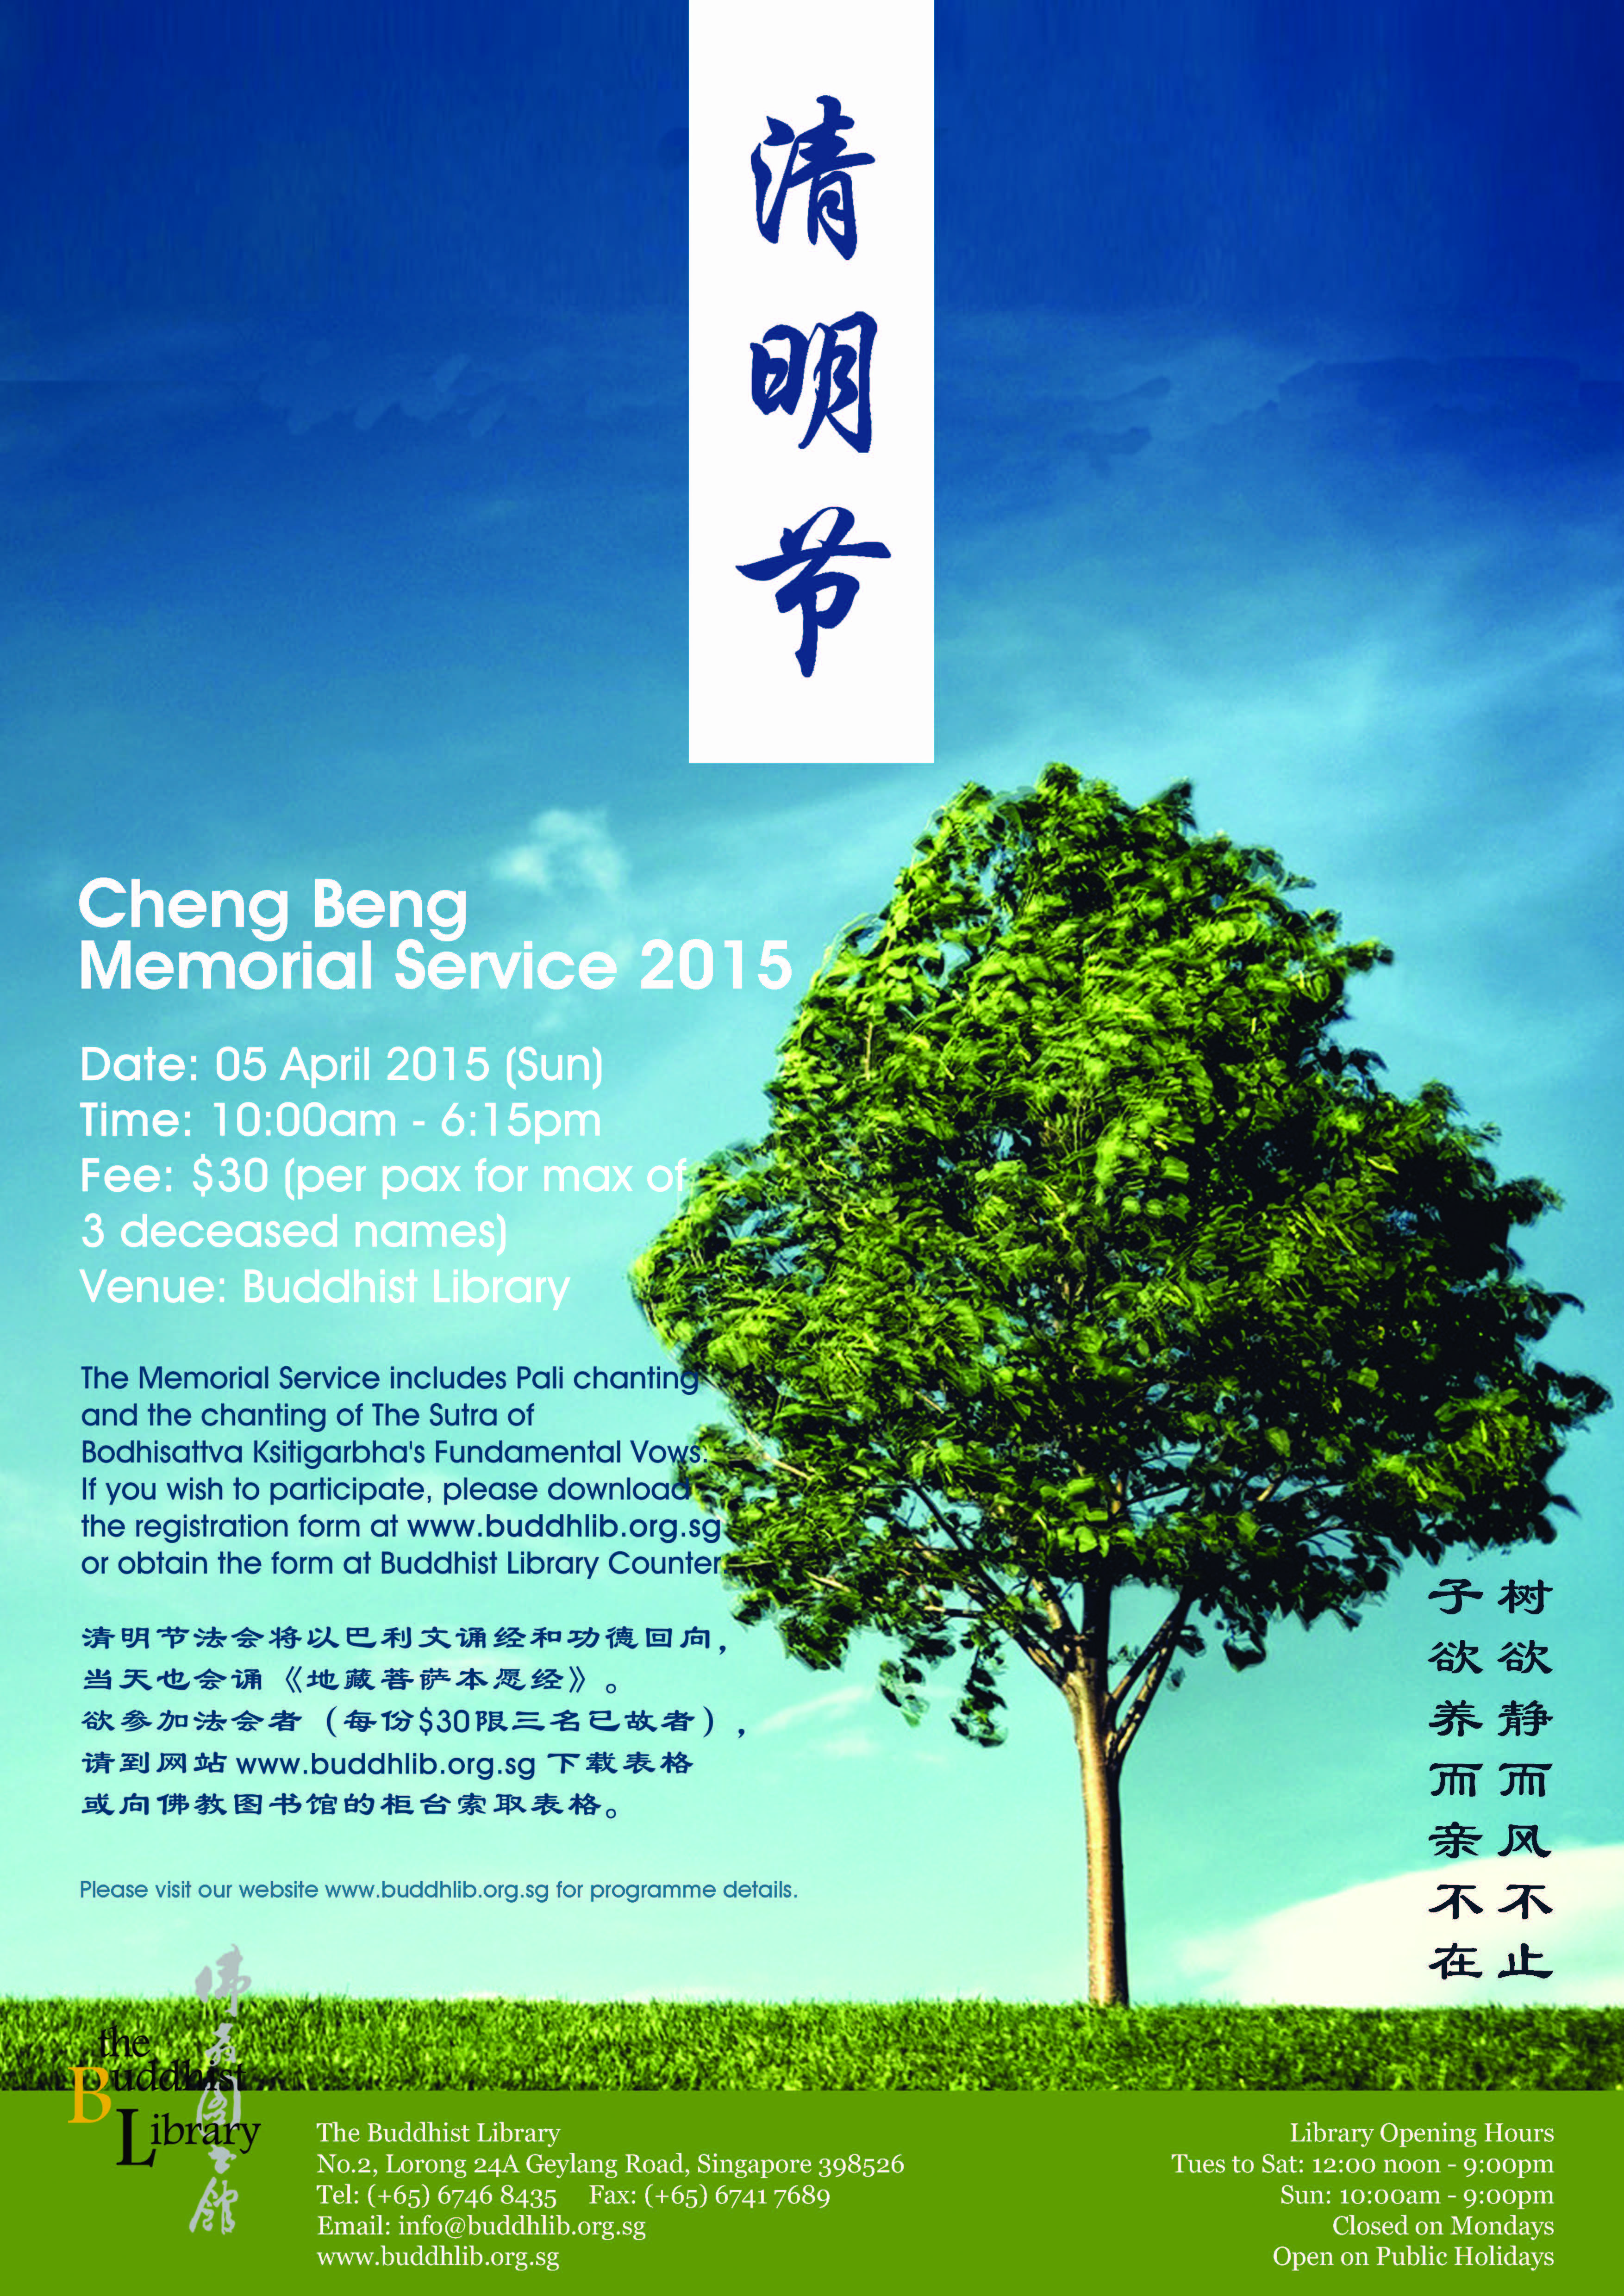 Poster design fee - Buddhist Library Cheng Beng Memorial Services 2015 Poster Design